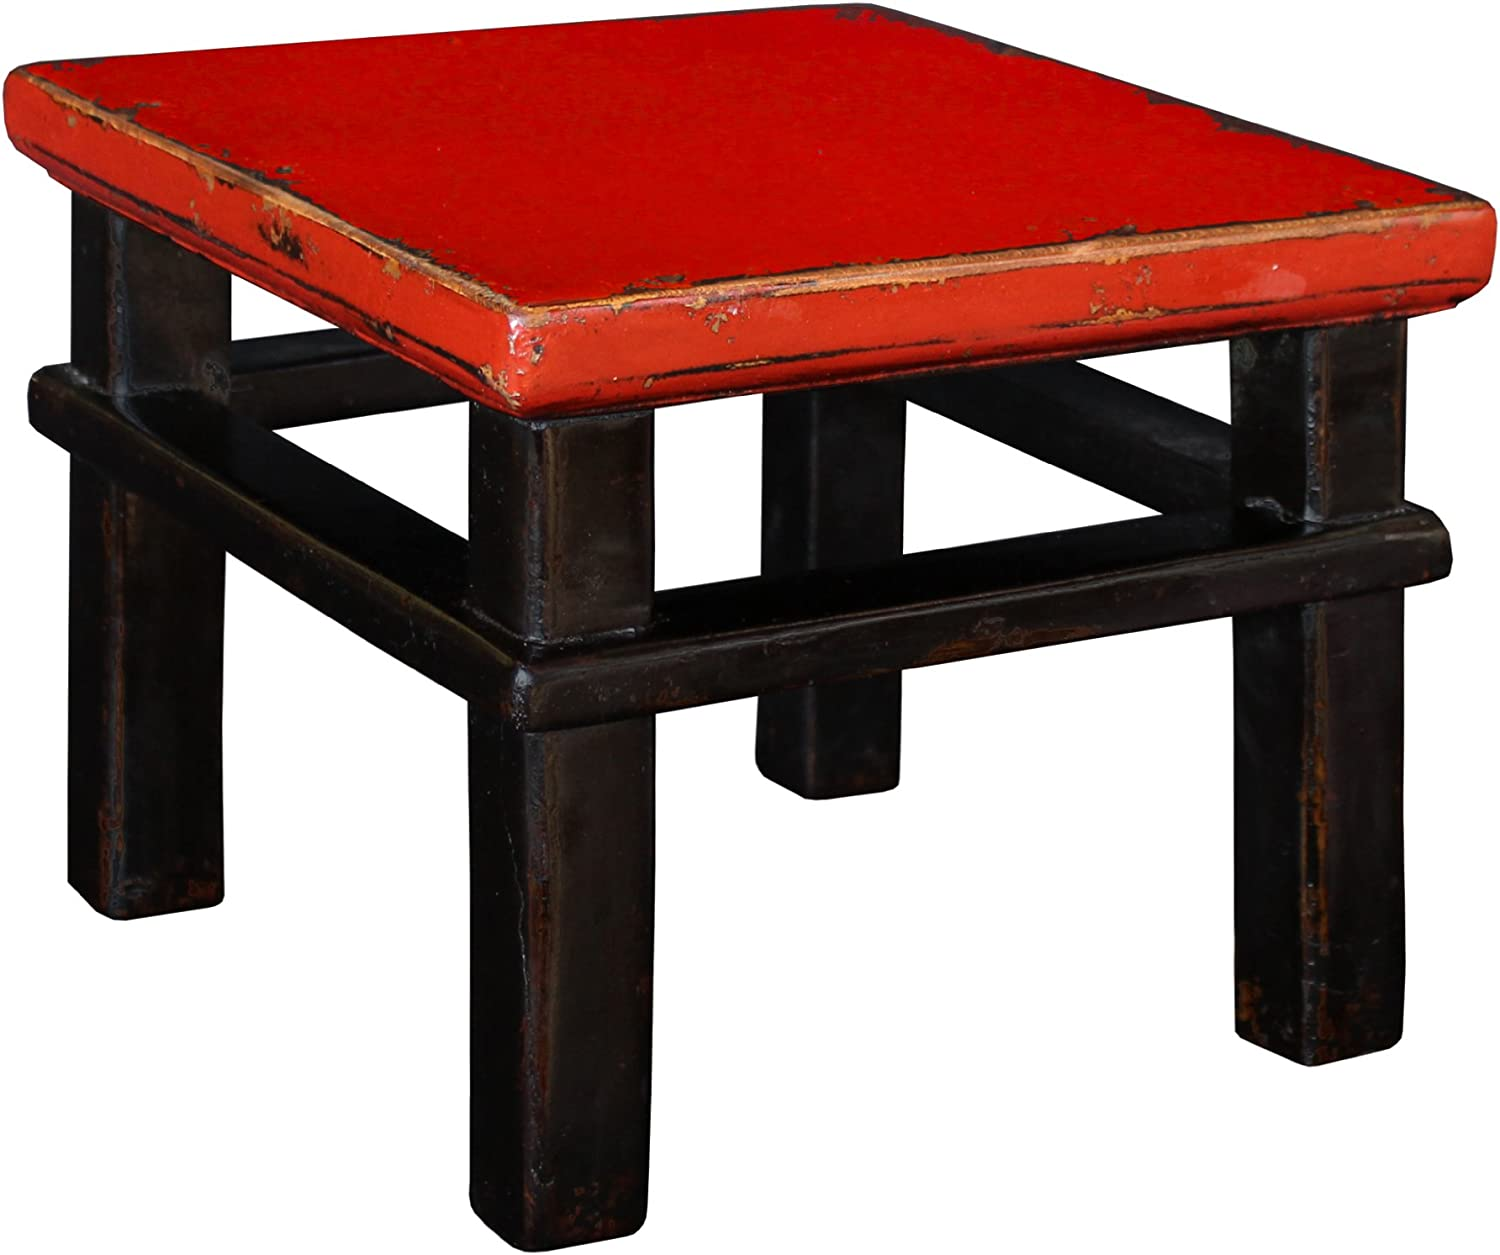 Porthos Home CH020A RED 'Lilliputian' Wooden Stool Red